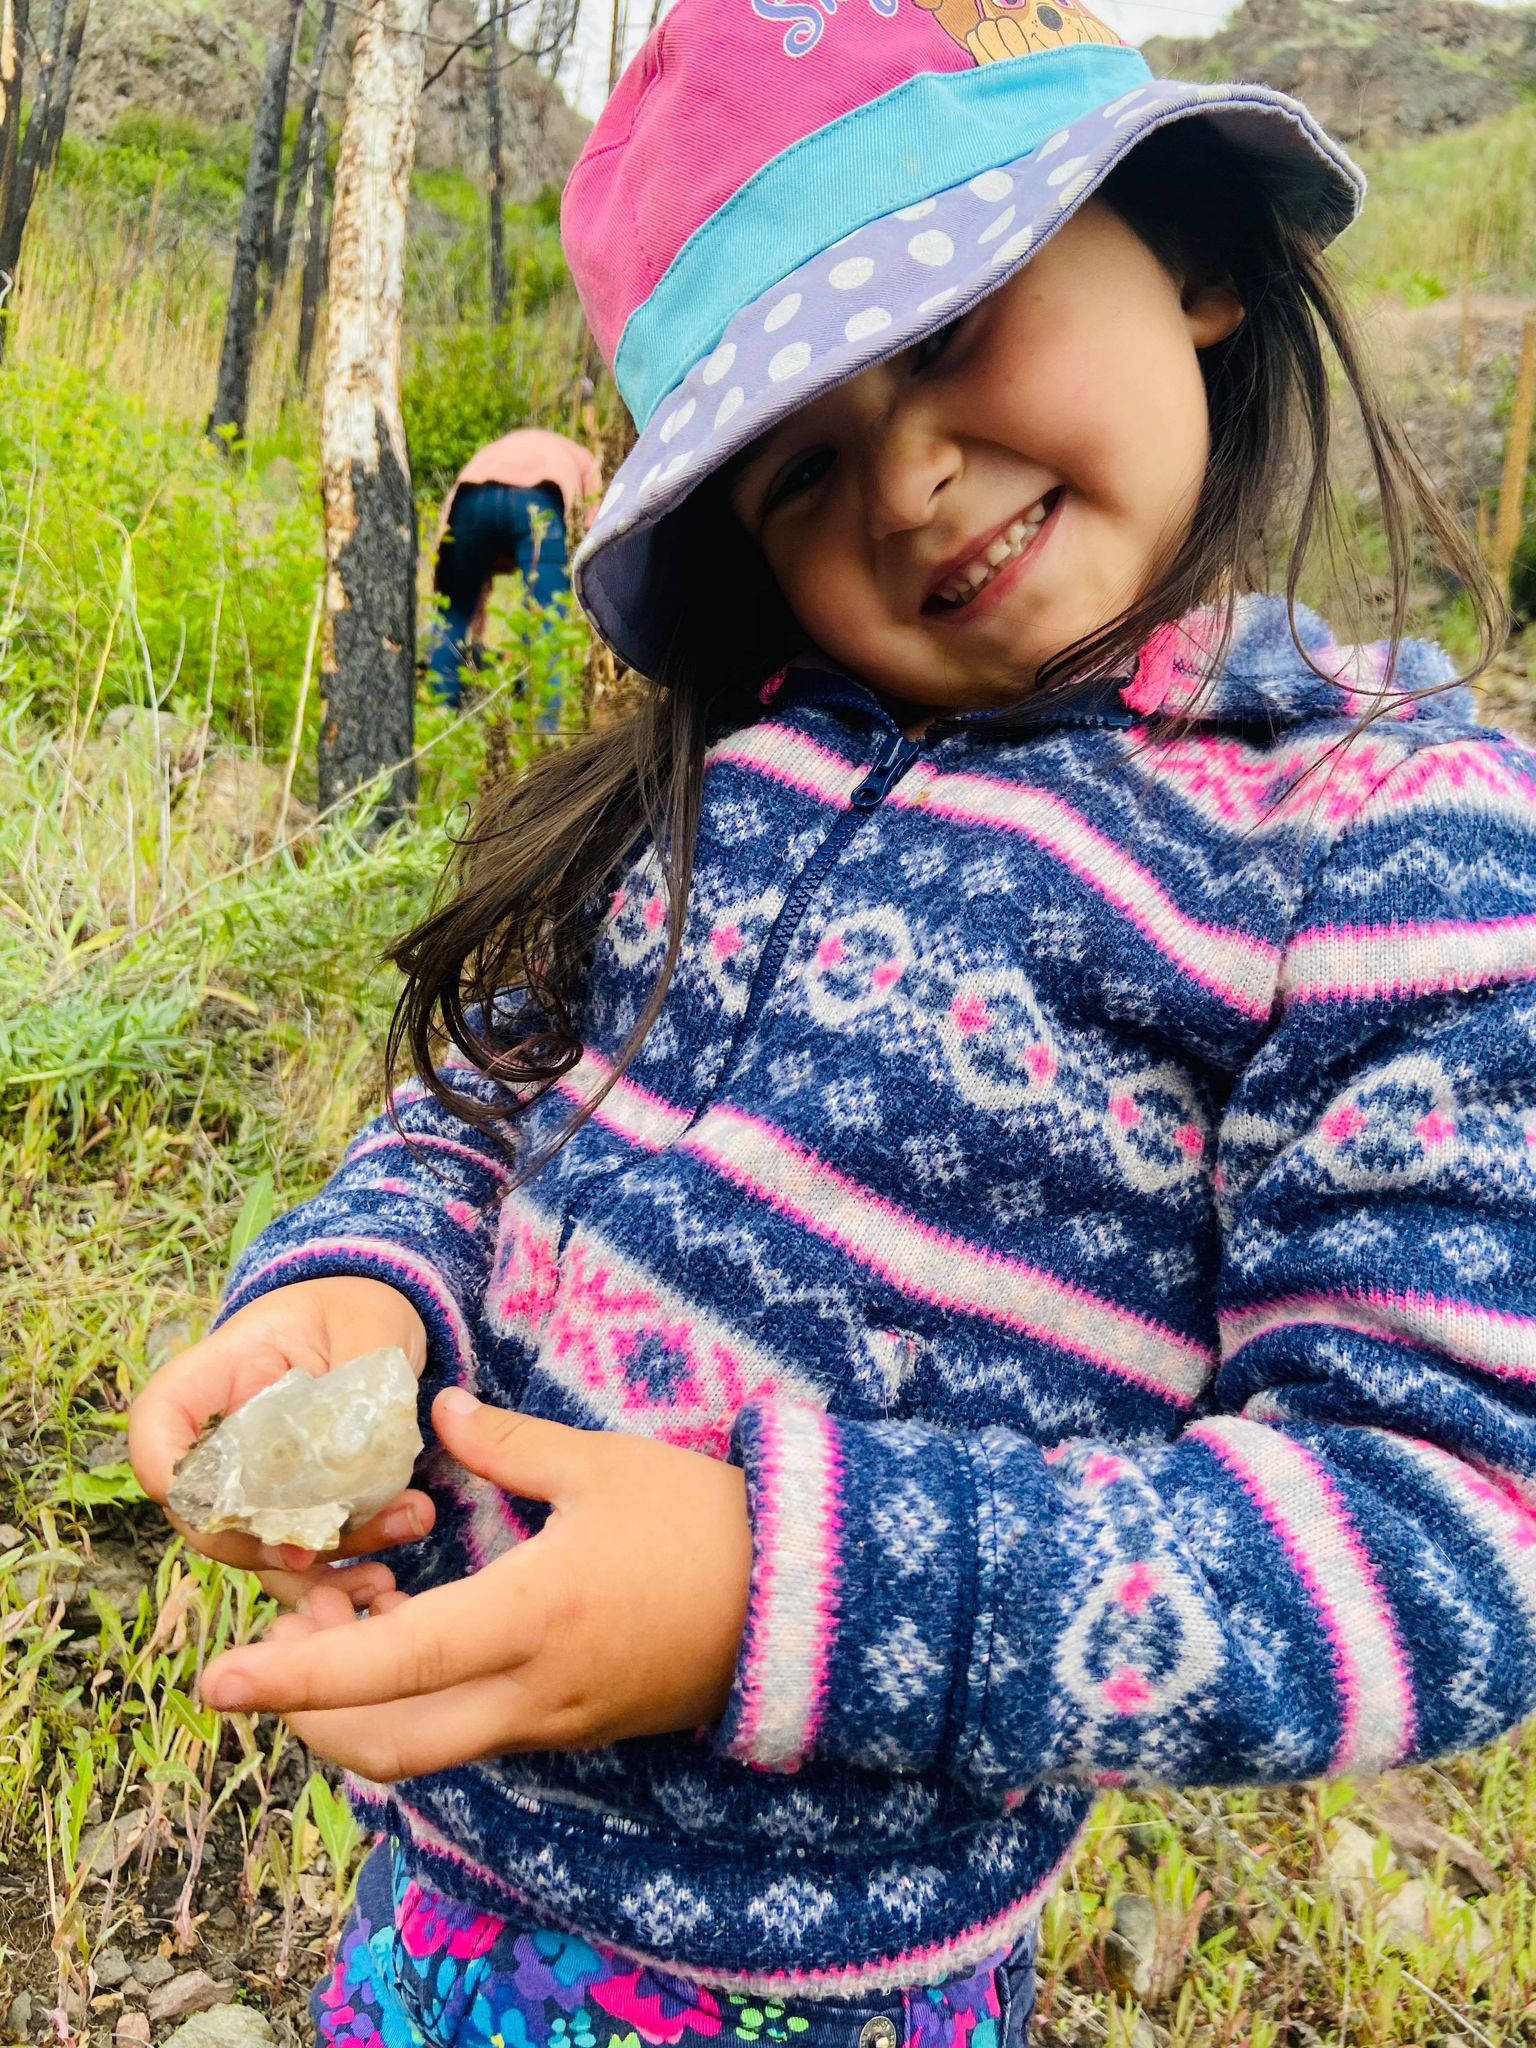 Rick Curiston's daughter Paisley beams as she shows off her latest find. The youngest member of Renegade Prospectors currently holds the family record for the biggest amethyst found. (Contributed Photo/Tina Francis)